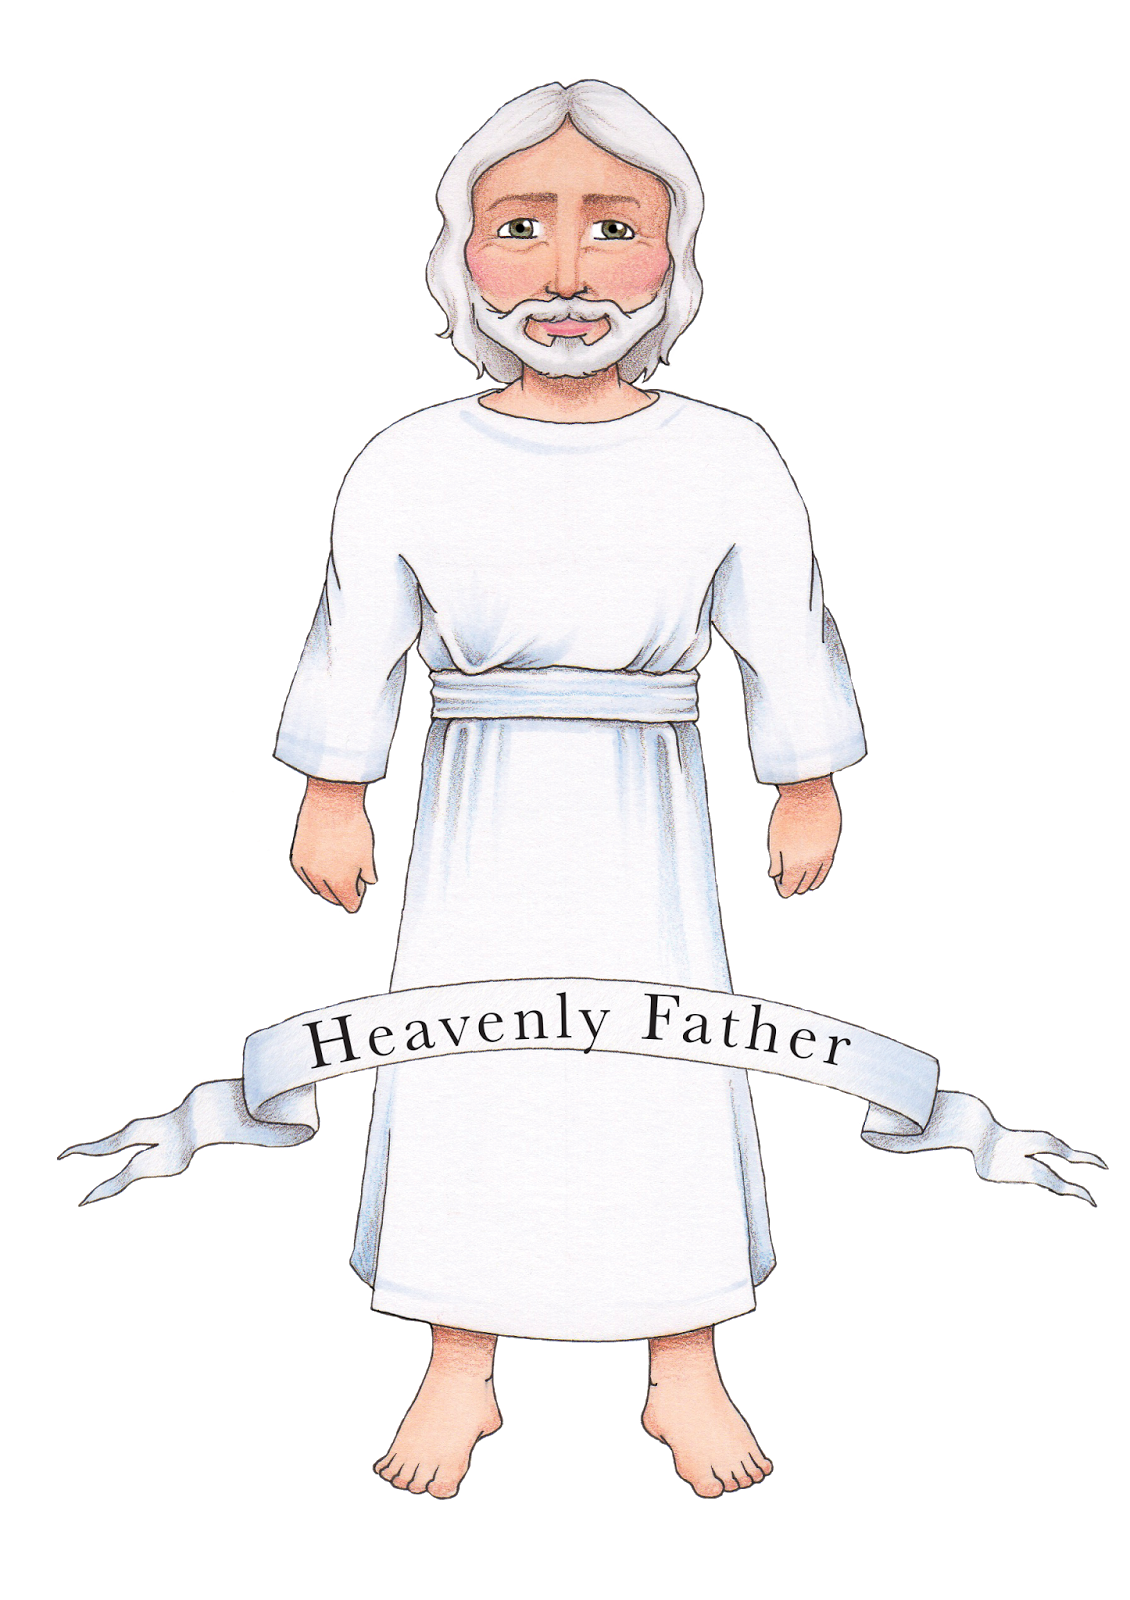 God the father clipart clipart images gallery for free download.